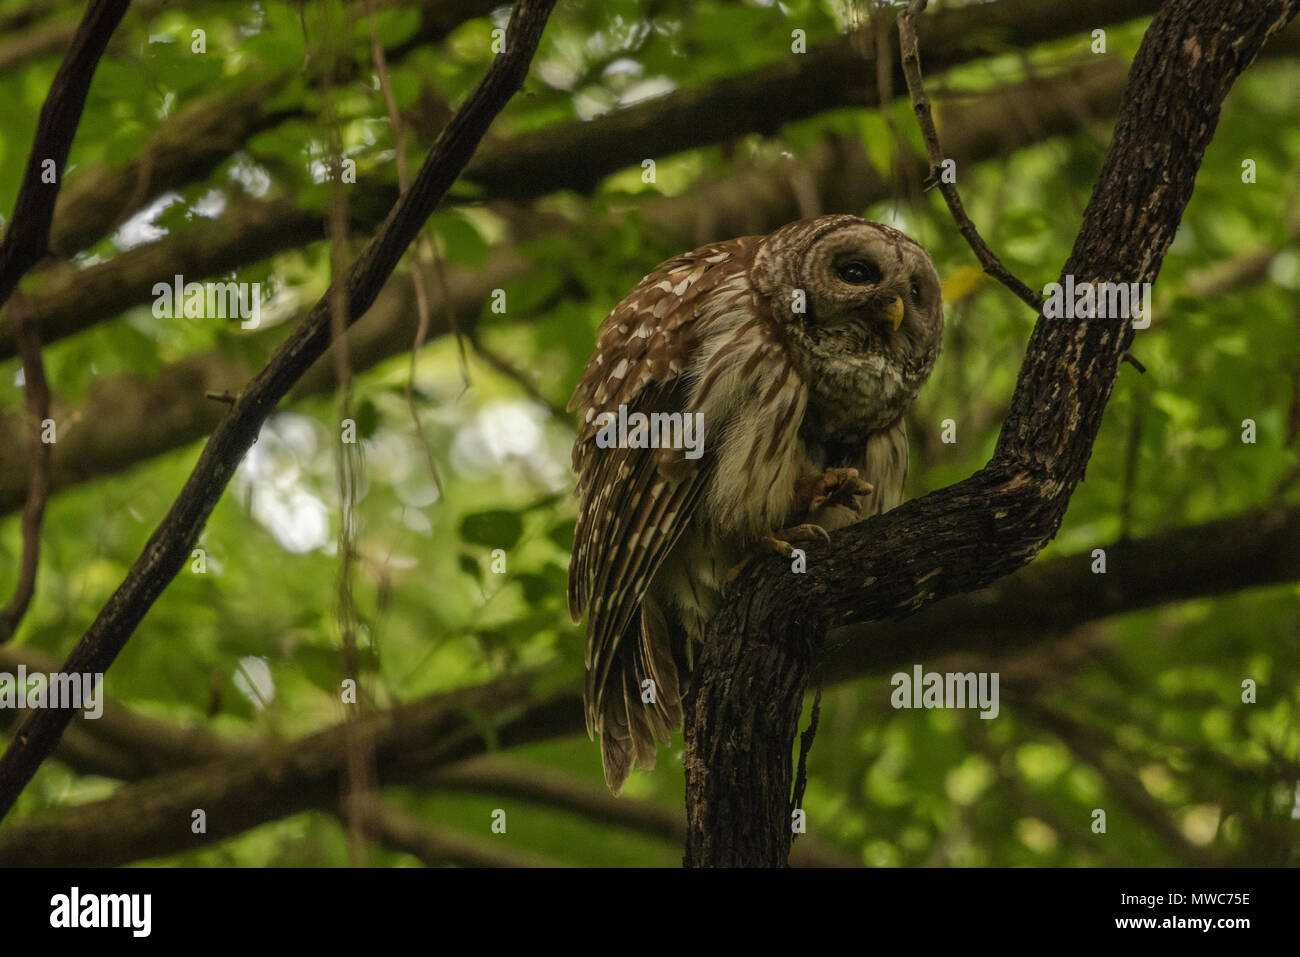 A barred owl (Strix varia) sitting in a dark forest at twilight as it waits for darkness to fall. - Stock Image